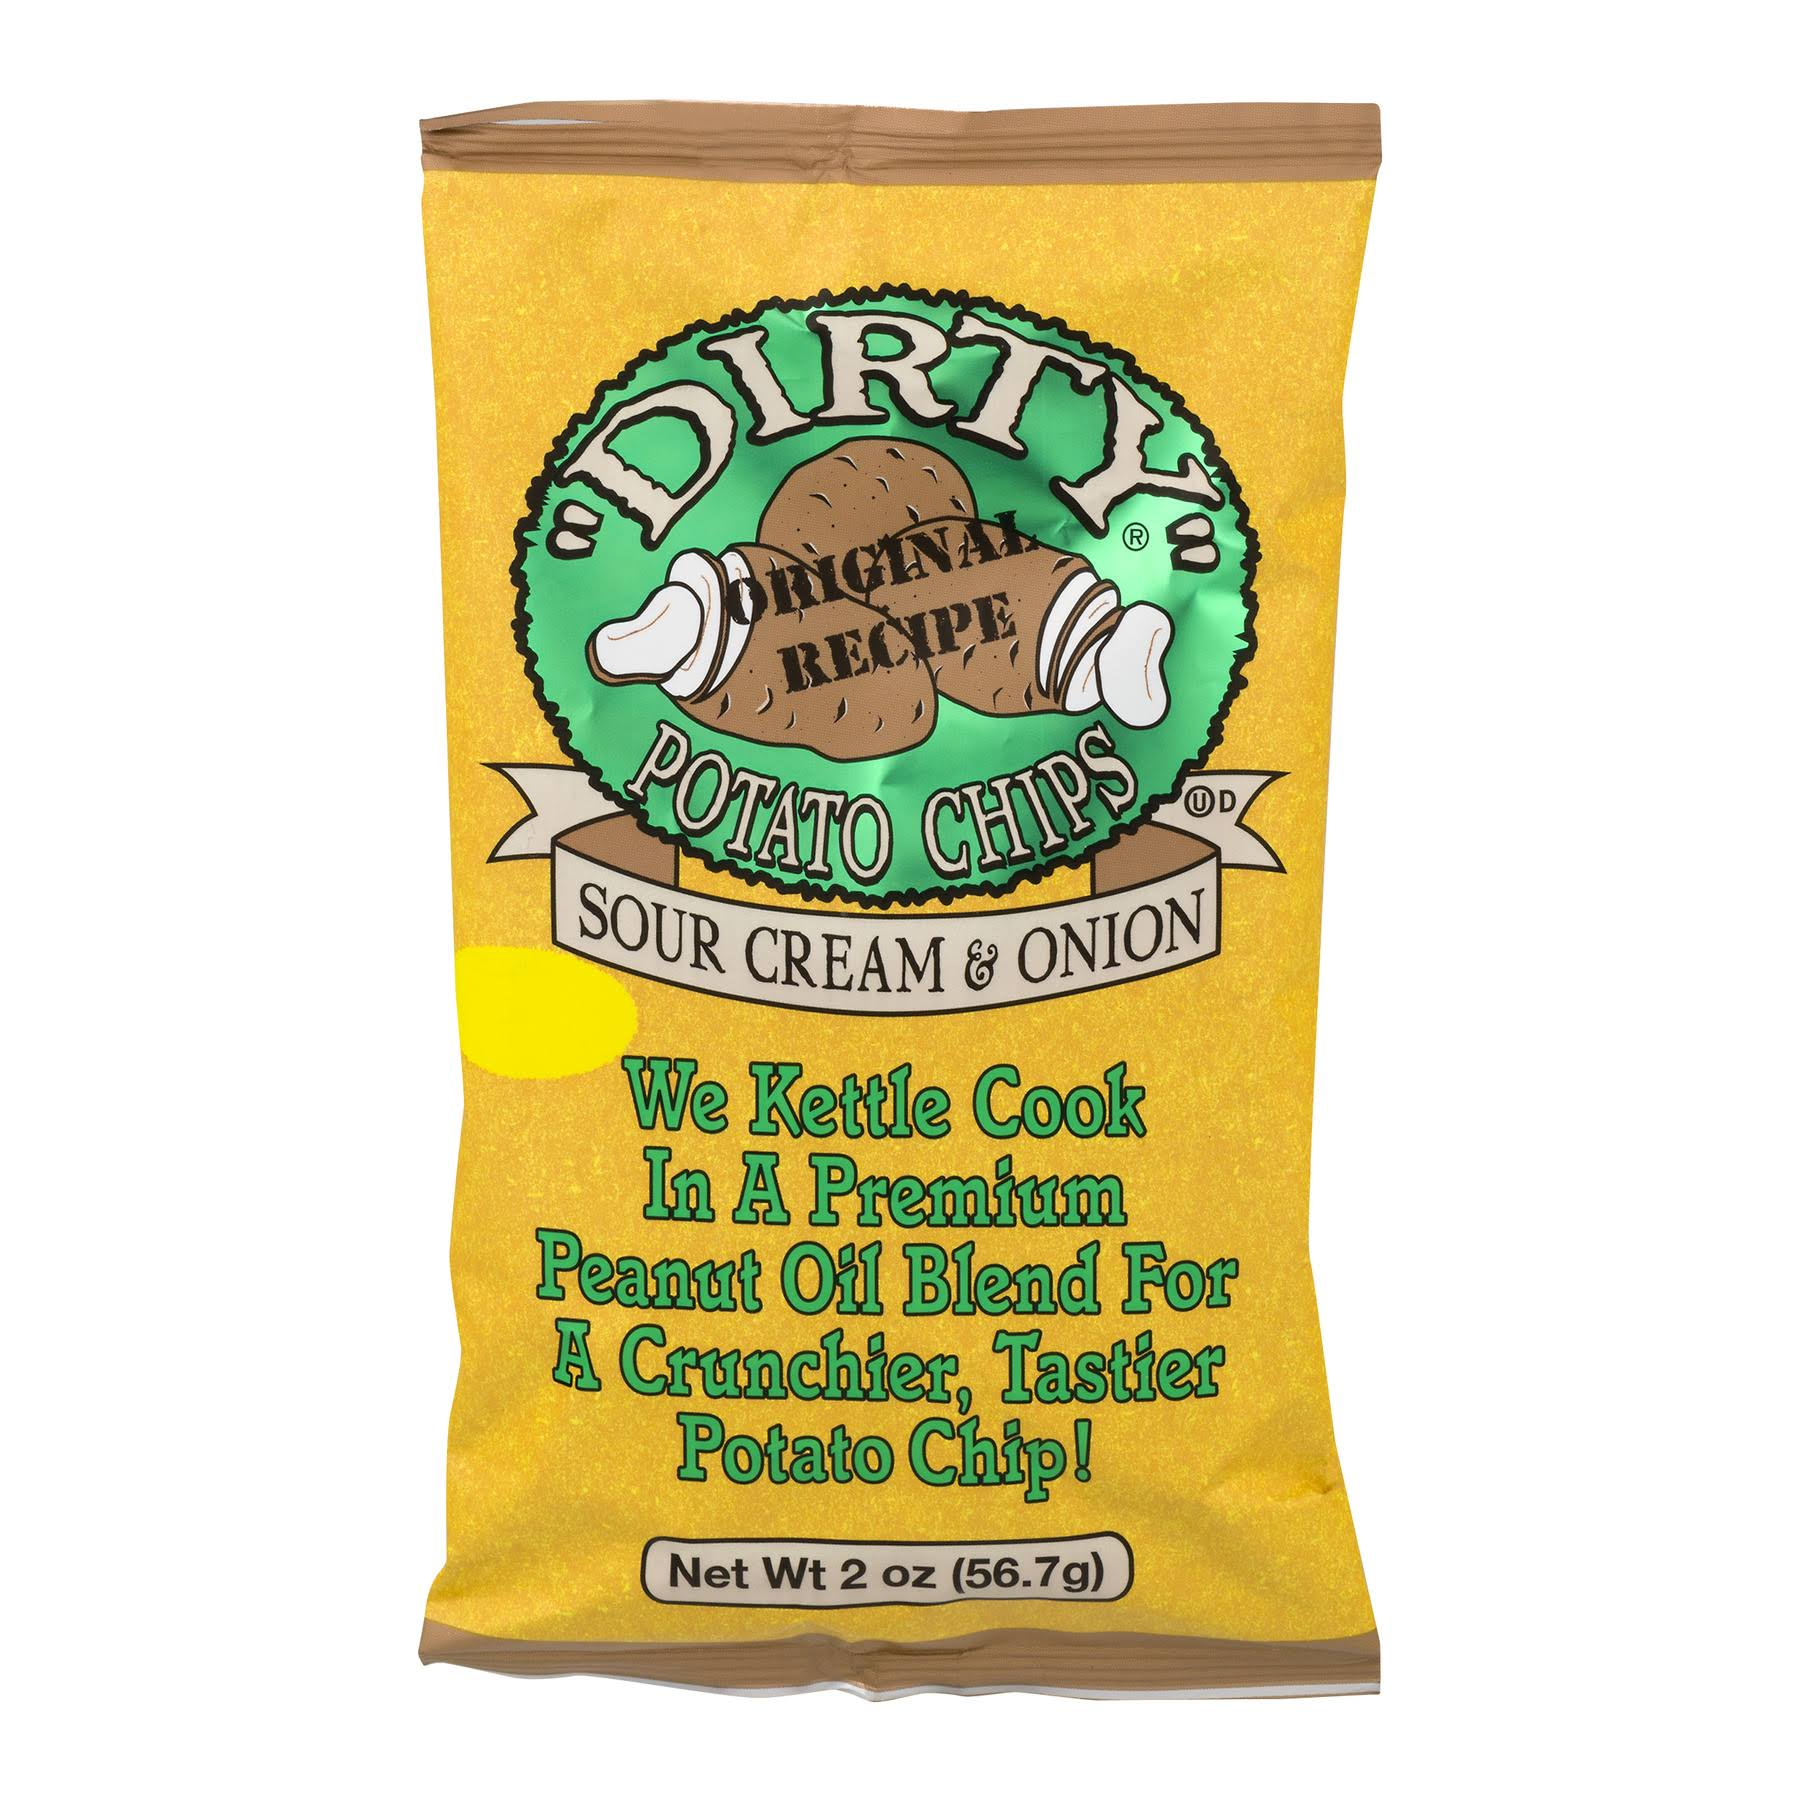 Dirty Potato Chips - Sour Cream and Onion, 2oz